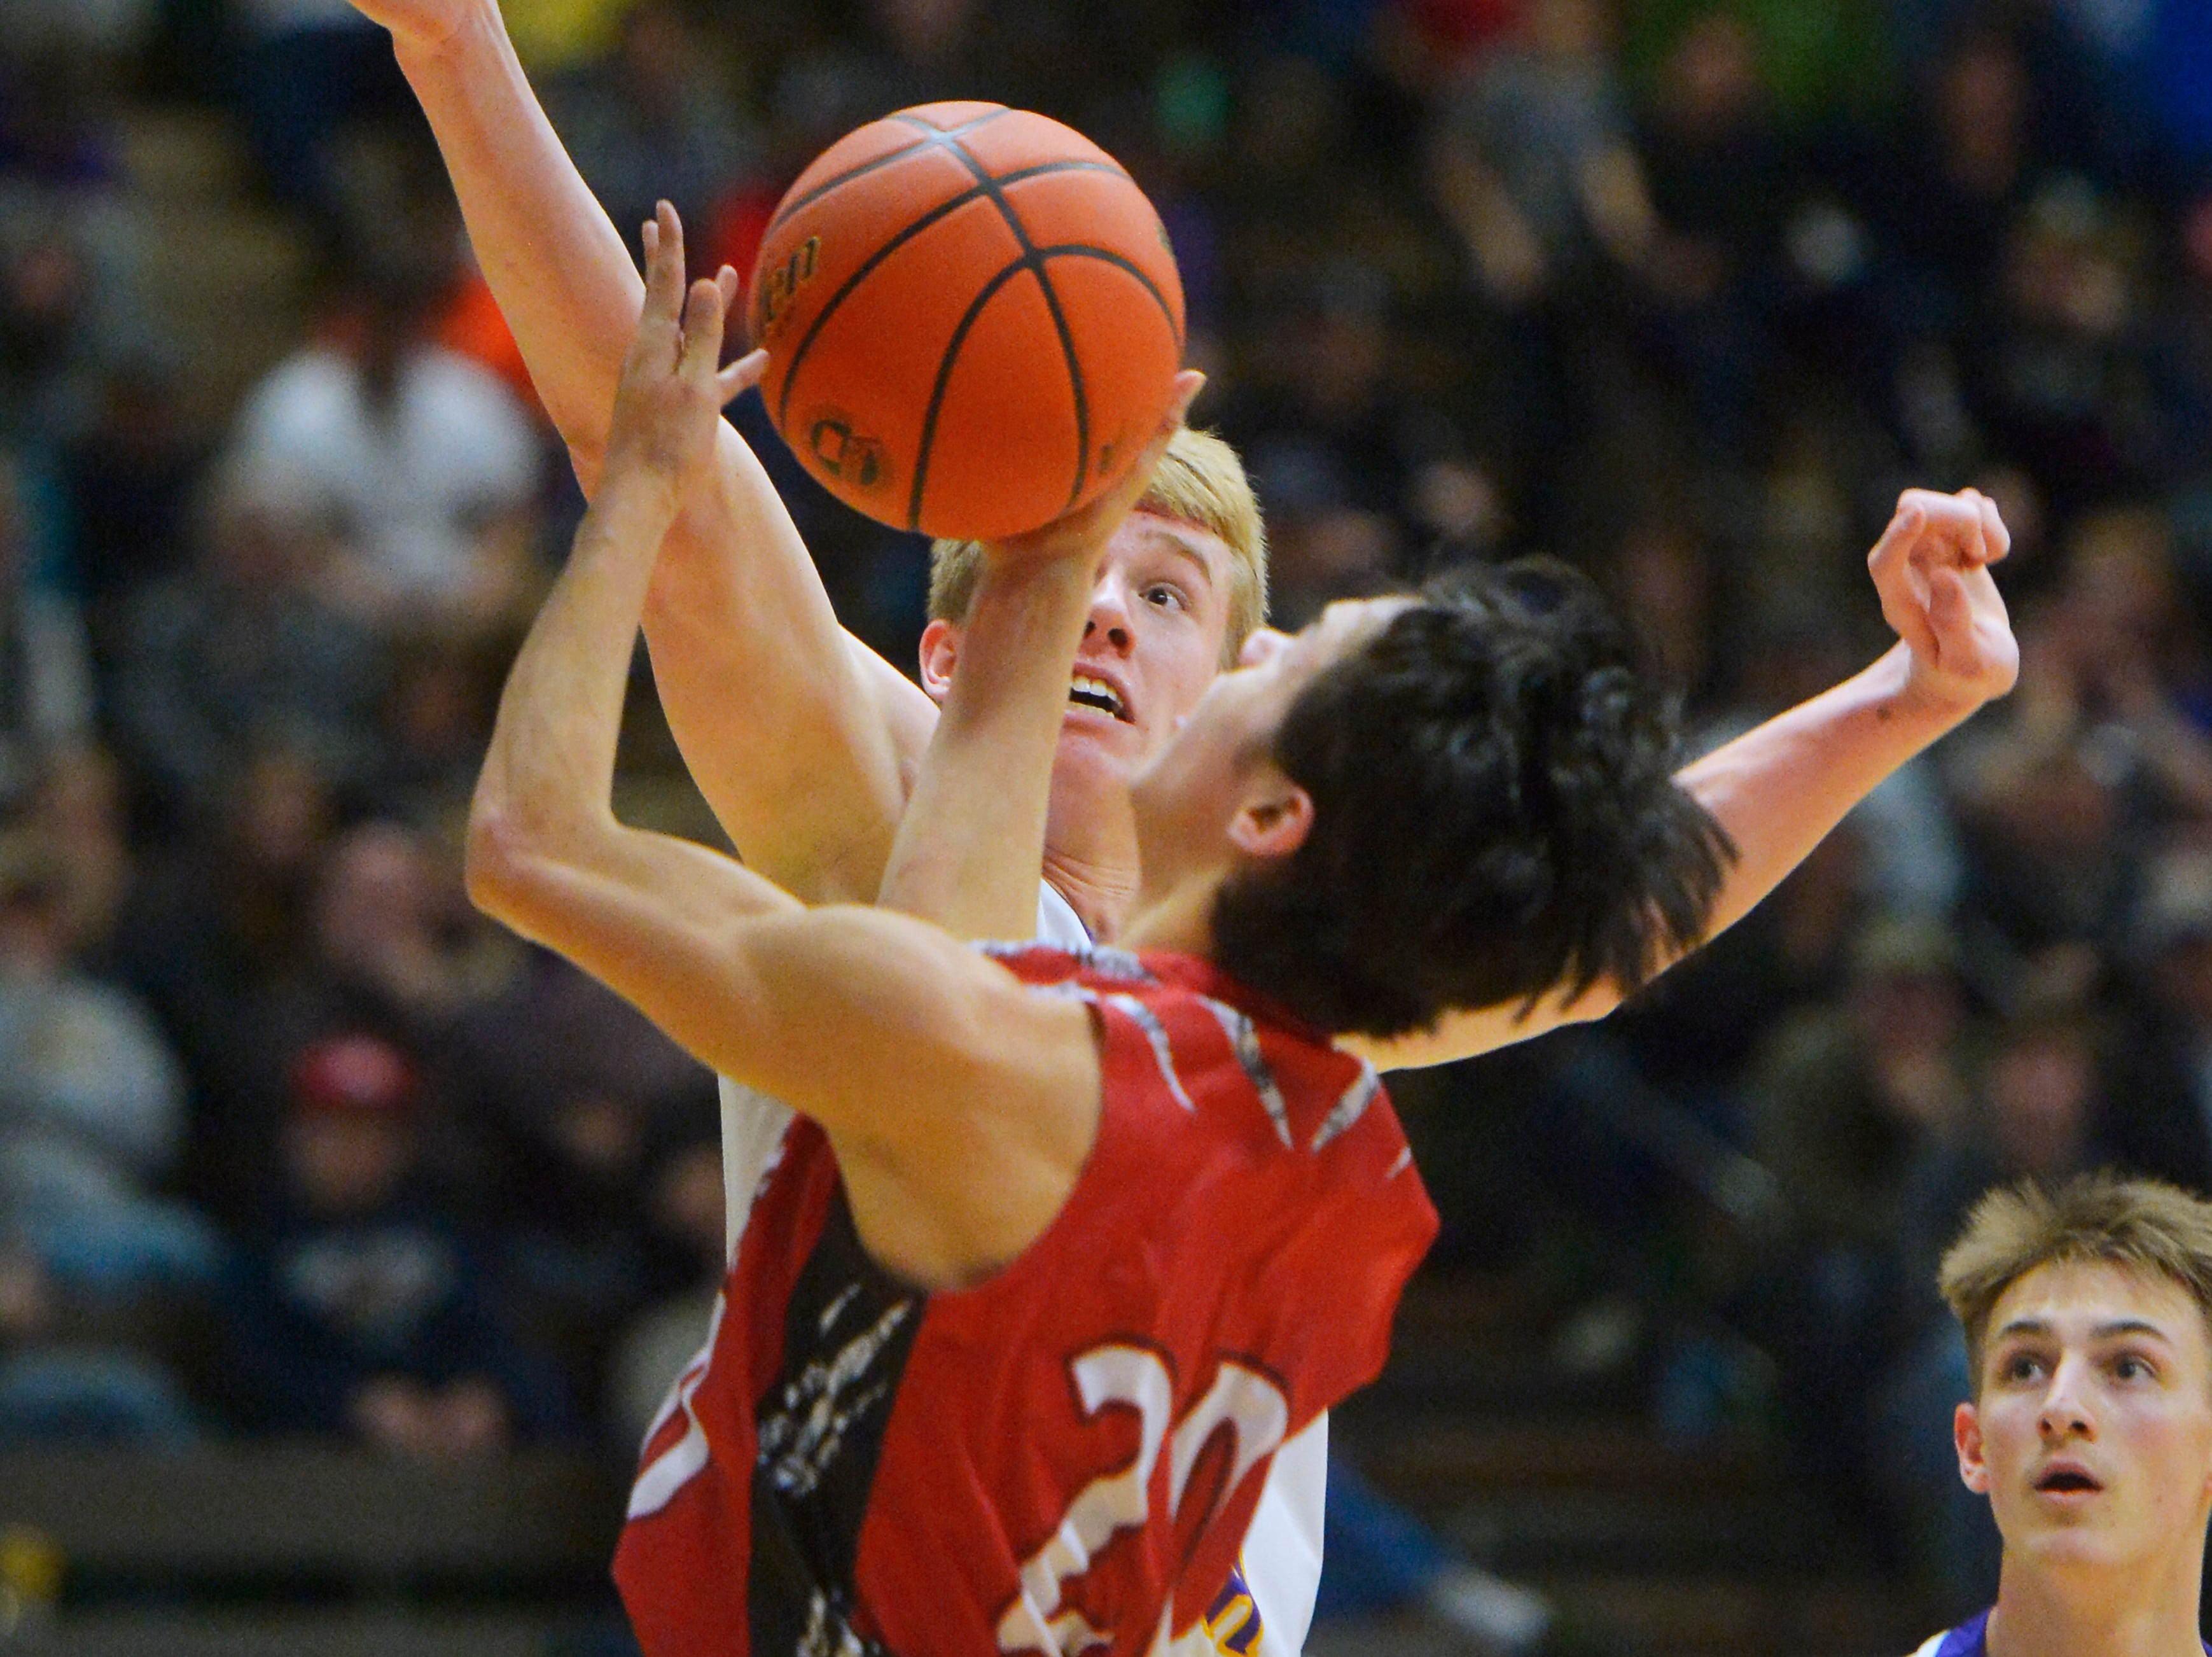 Laurel's Colter Bales defends the basket as Browning's CJ Smith attempts a shot in the consolation bracket of the State Class A Basketball Tournament on Friday.